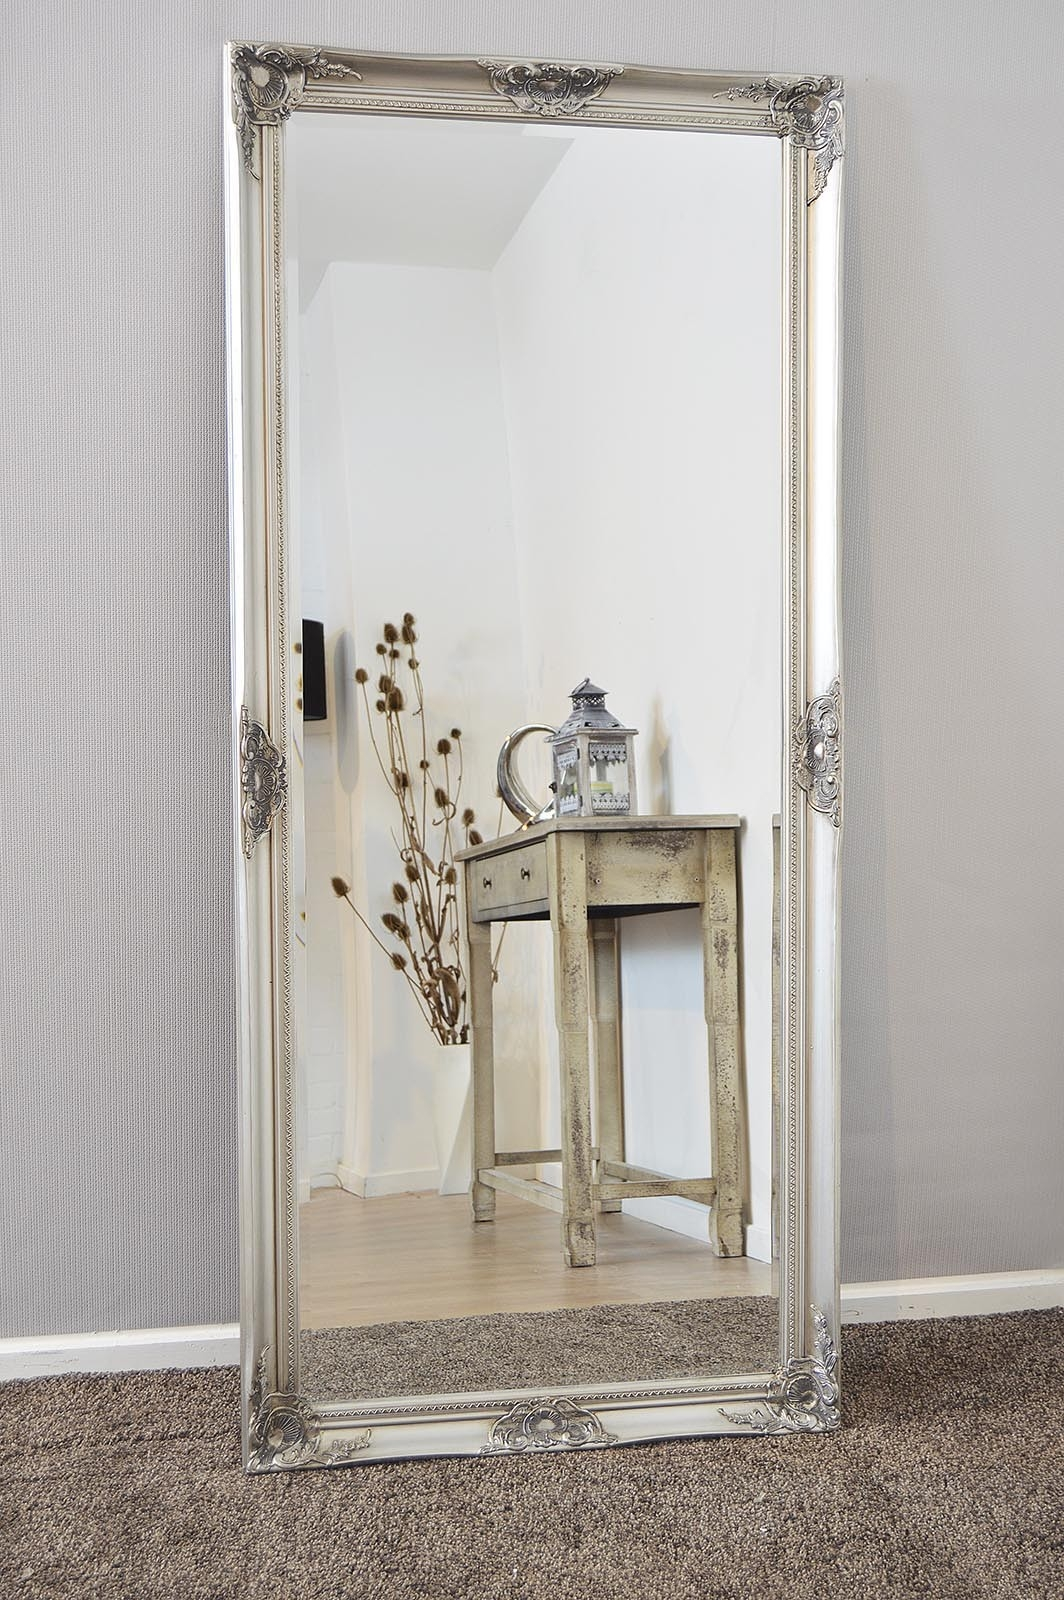 Silver Wall Mirrors Decorative Inarace Intended For Shabby Chic Large Wall Mirrors (View 5 of 15)